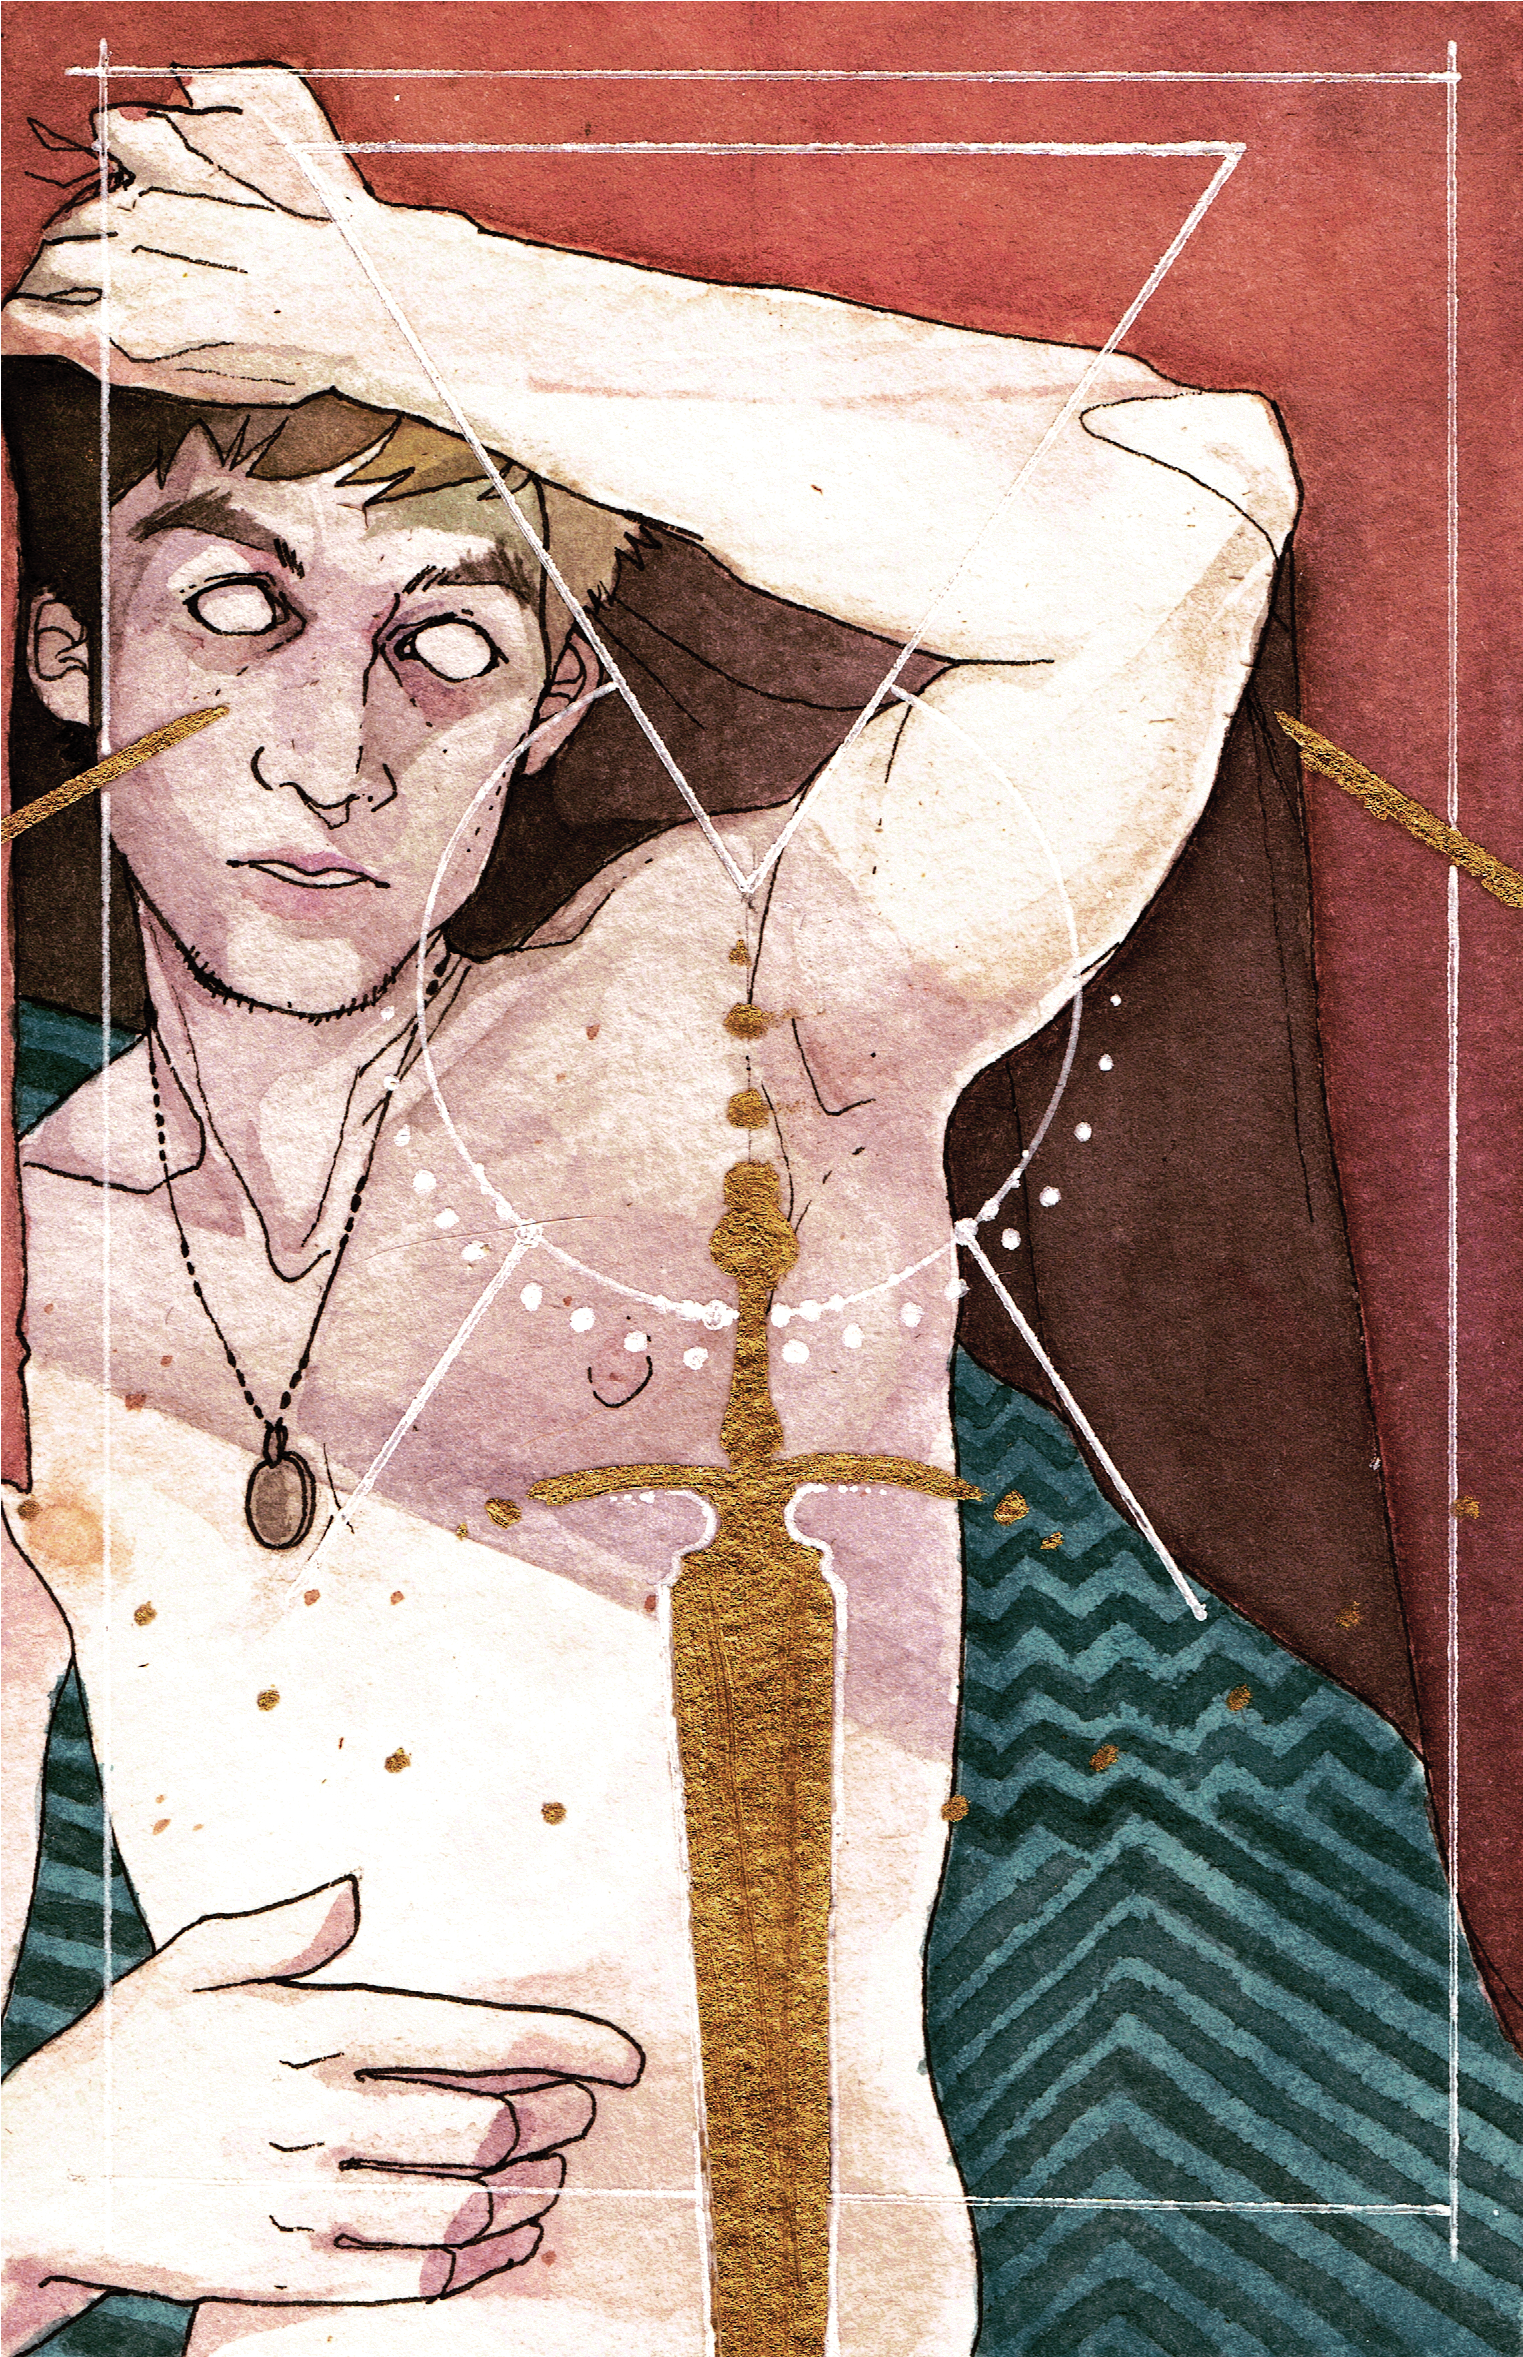 Dec 2014 - Watercolour + Goldleaf  Personal Painting for the Arisia Art Show